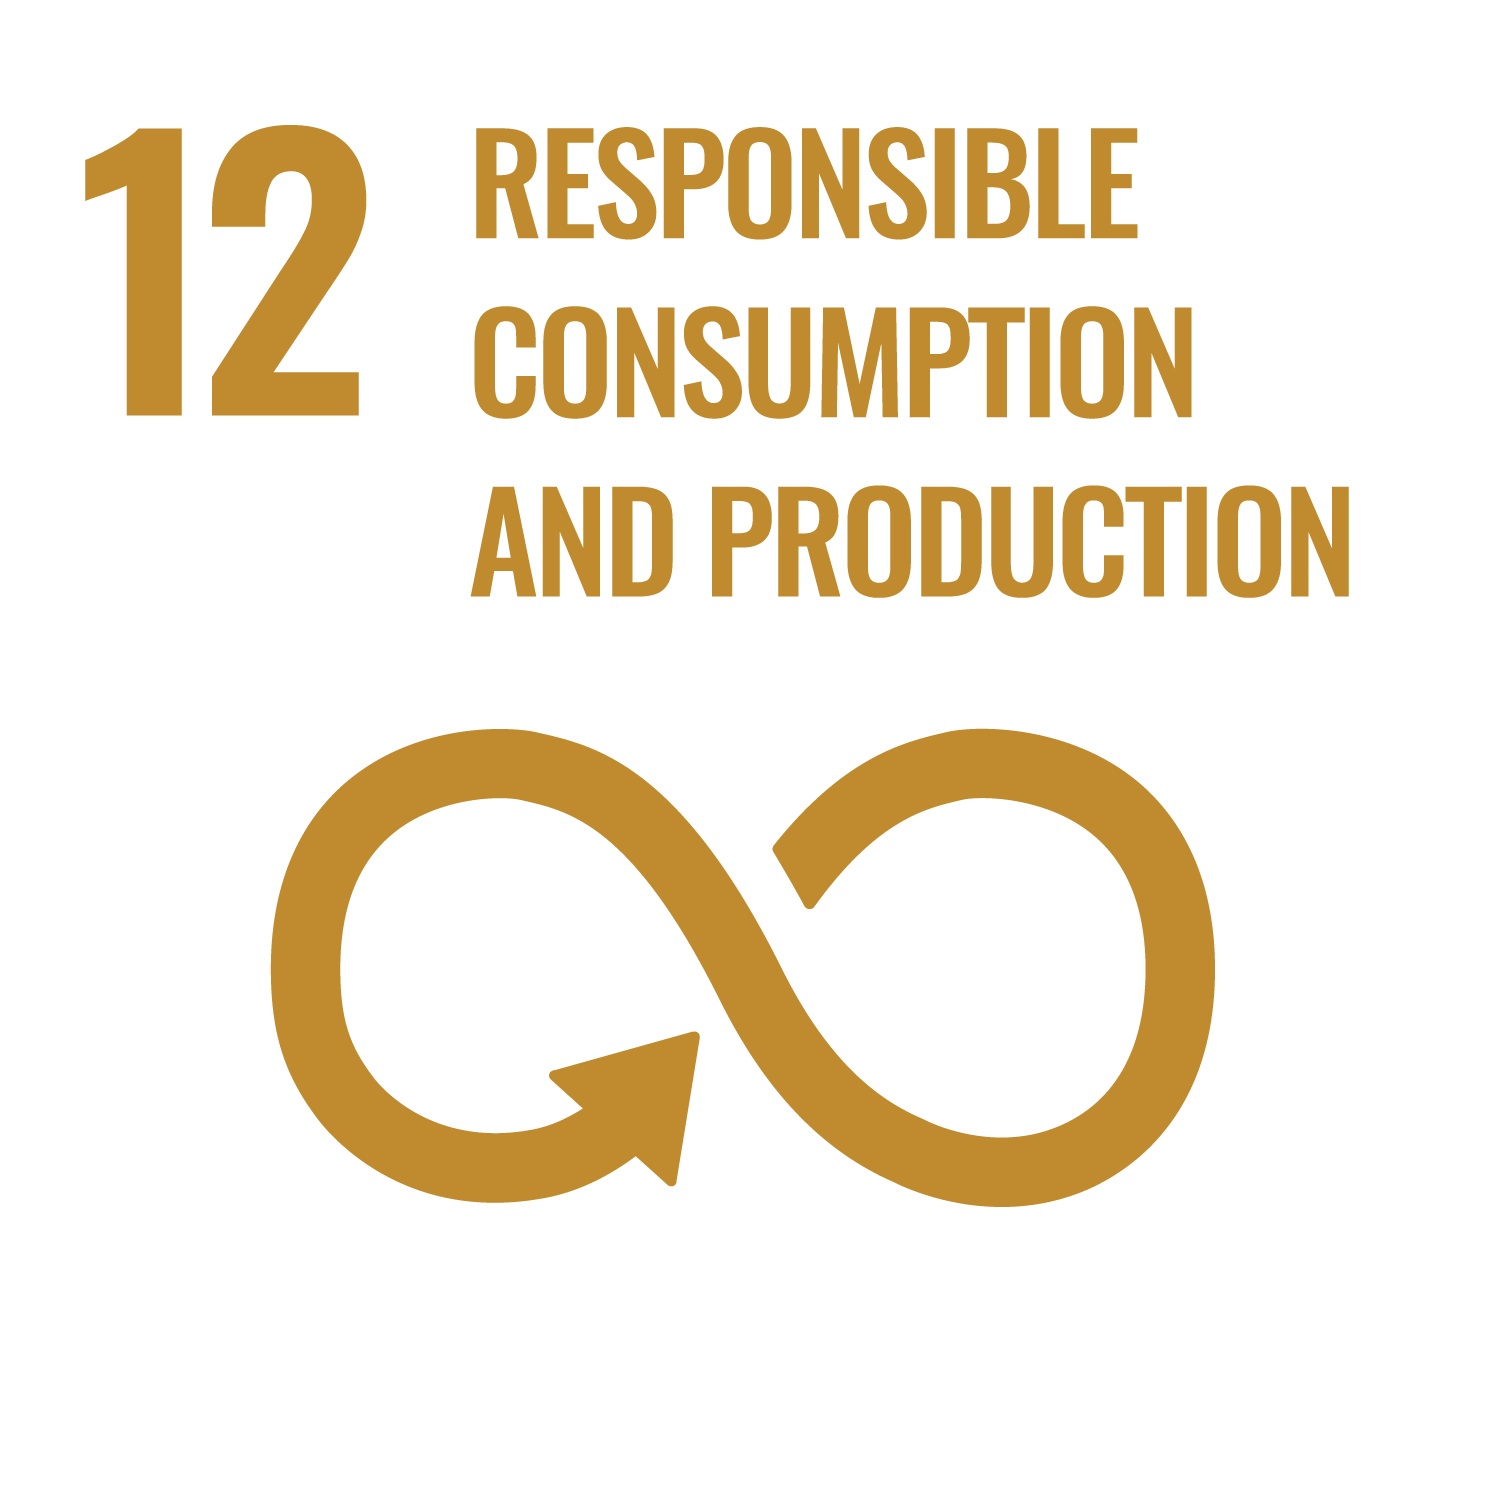 12. Responsible Consumption and Production